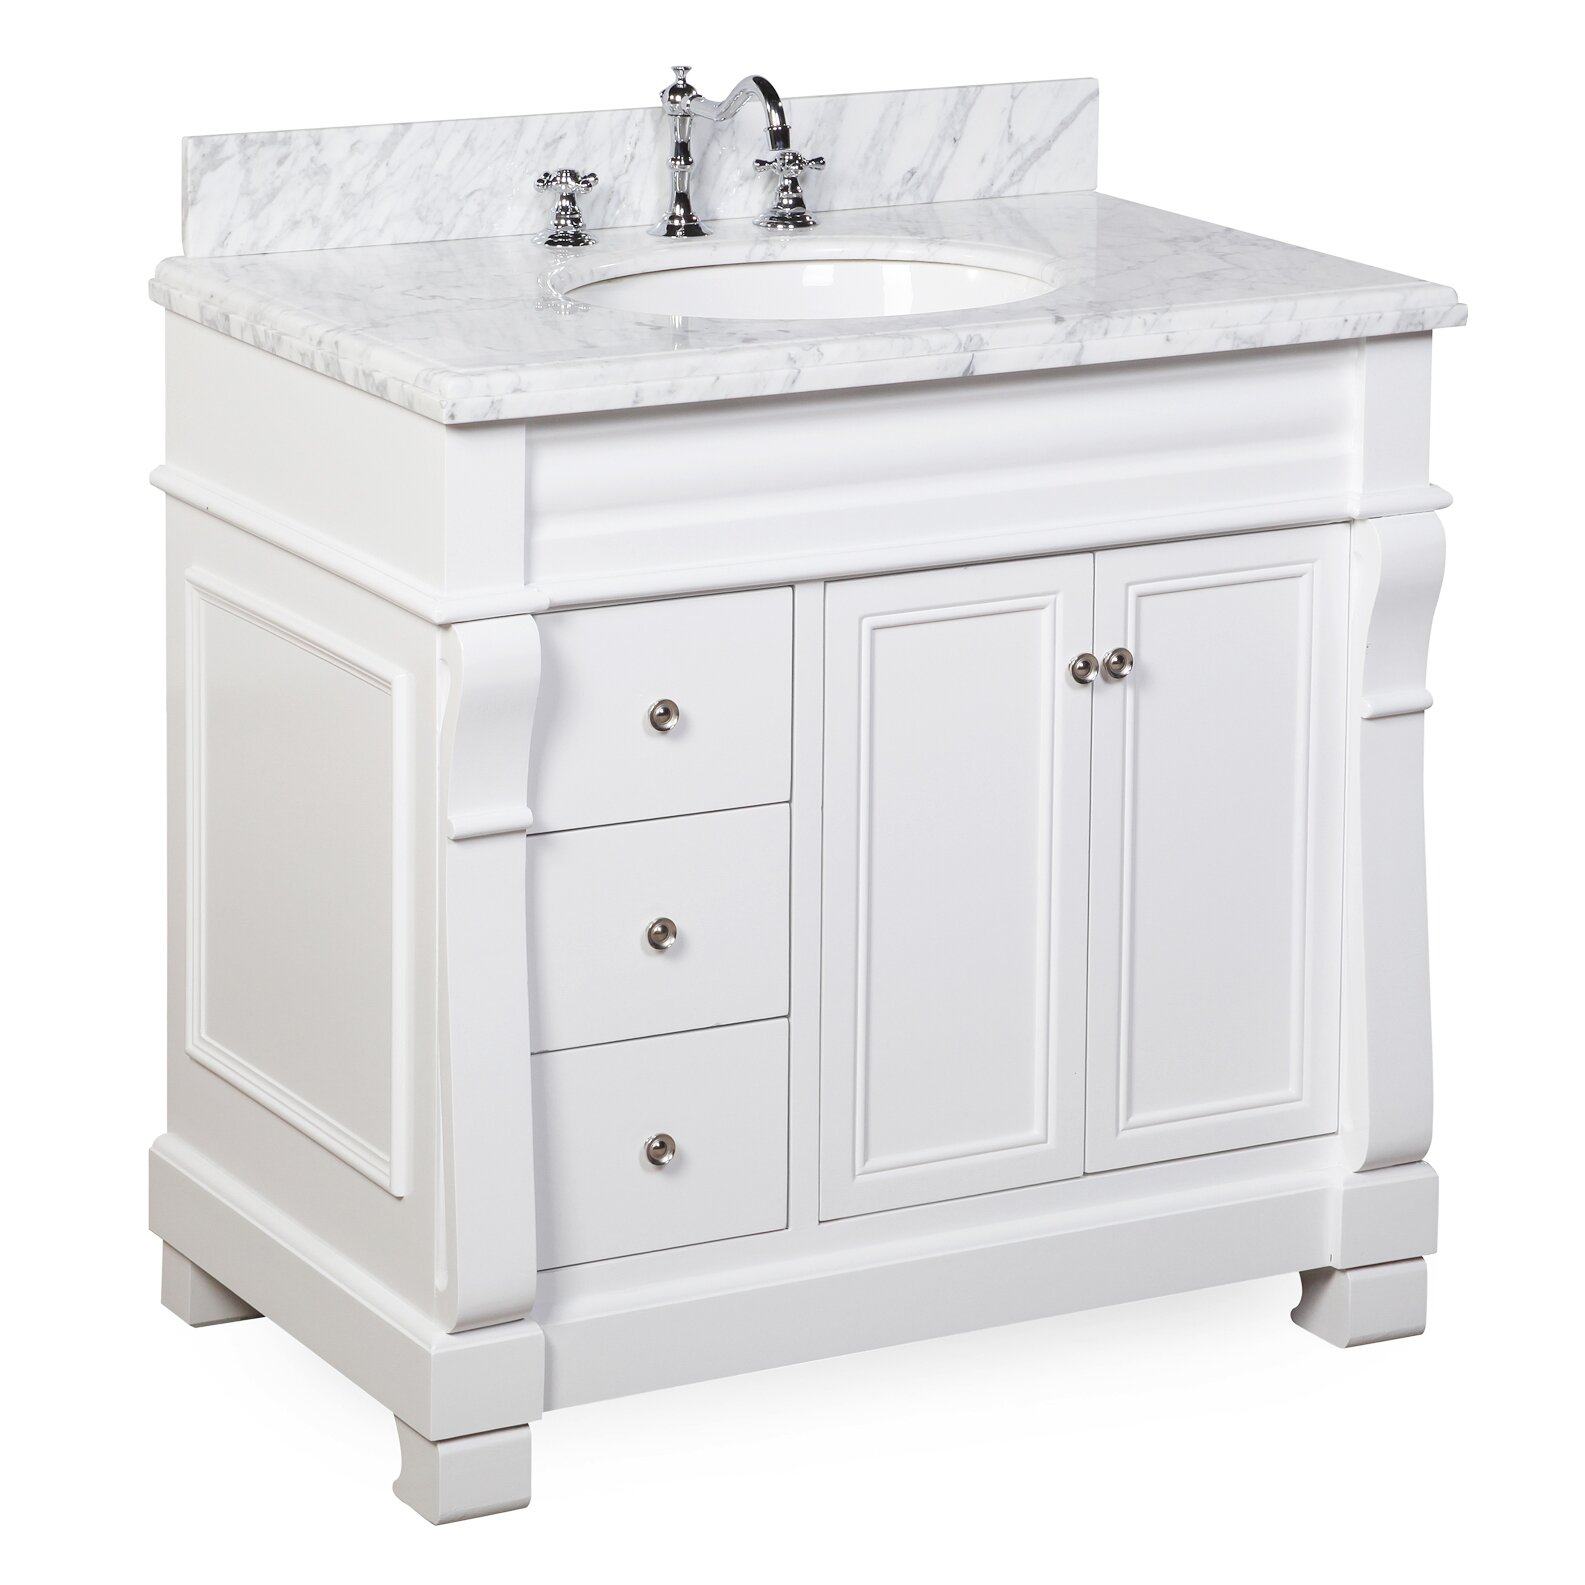 Kbc Westminster 36 Single Bathroom Vanity Set Reviews